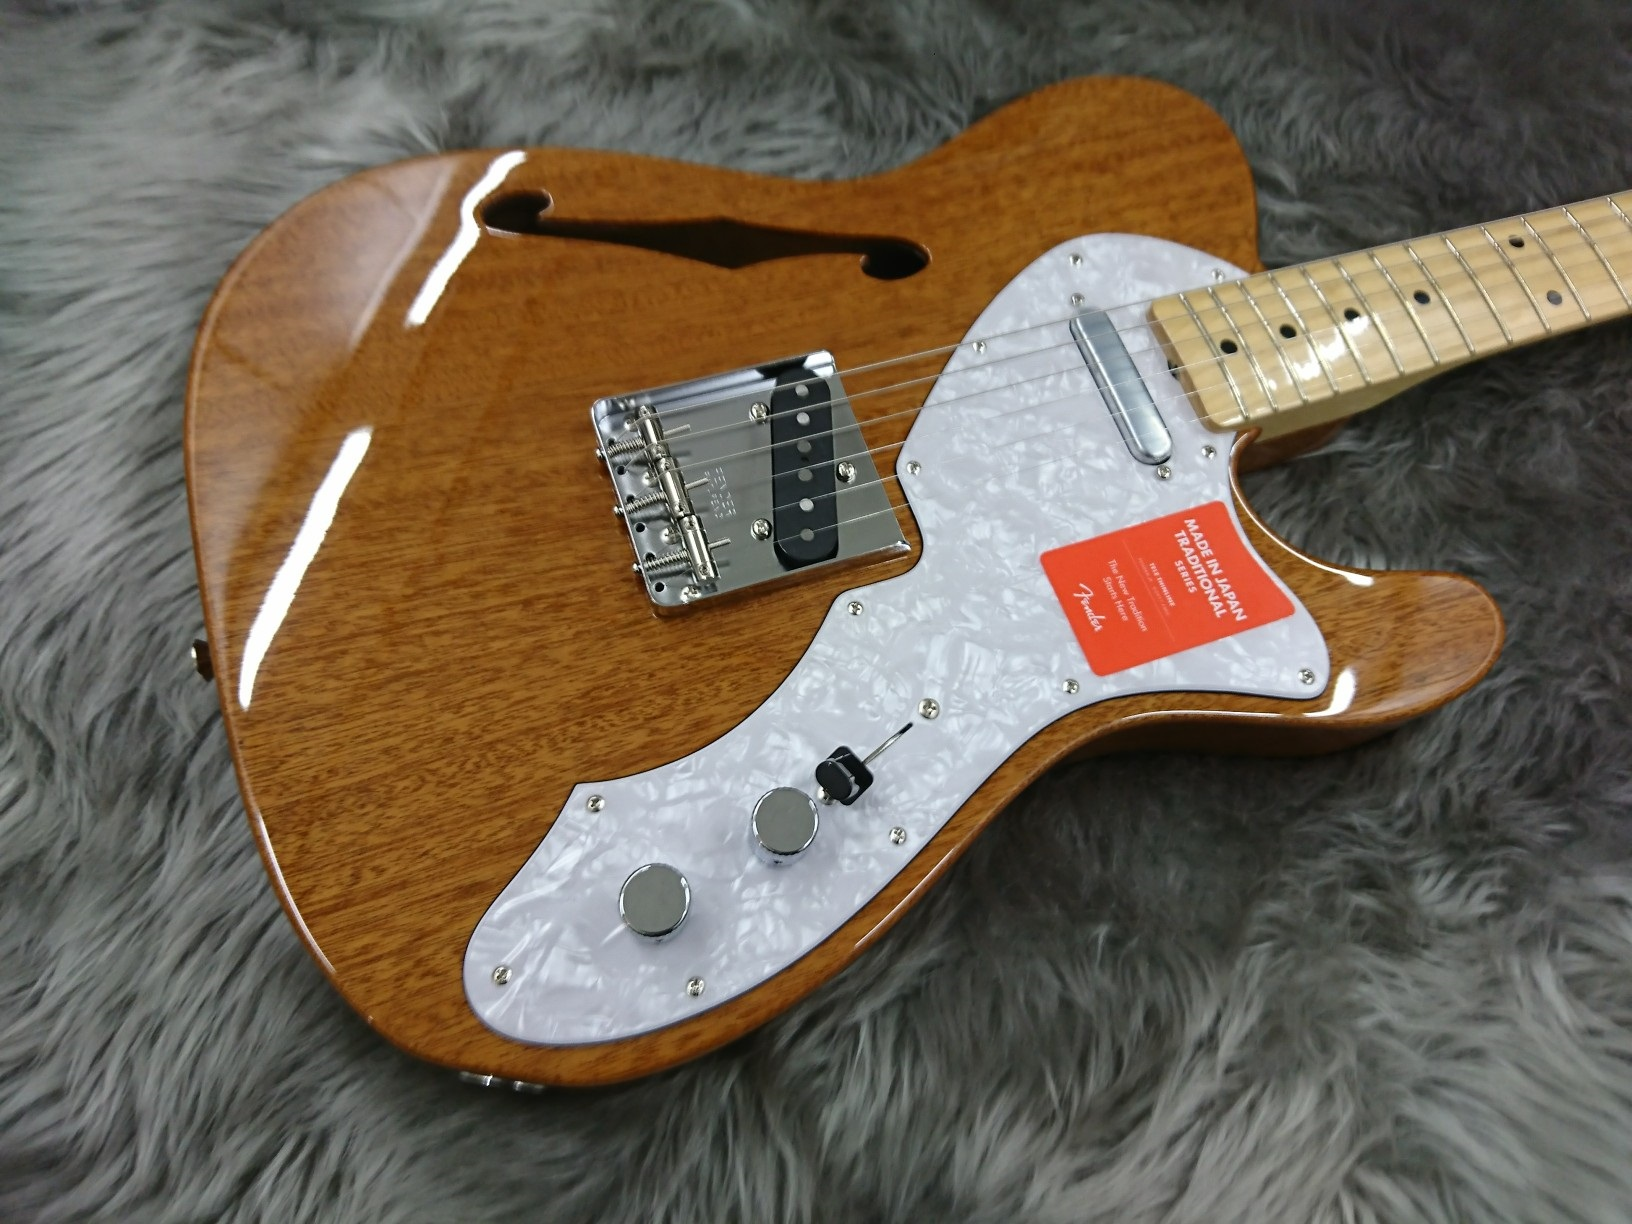 MADE IN JAPAN TRADITIONAL 69 TELECASTER THINLINEのボディトップ-アップ画像